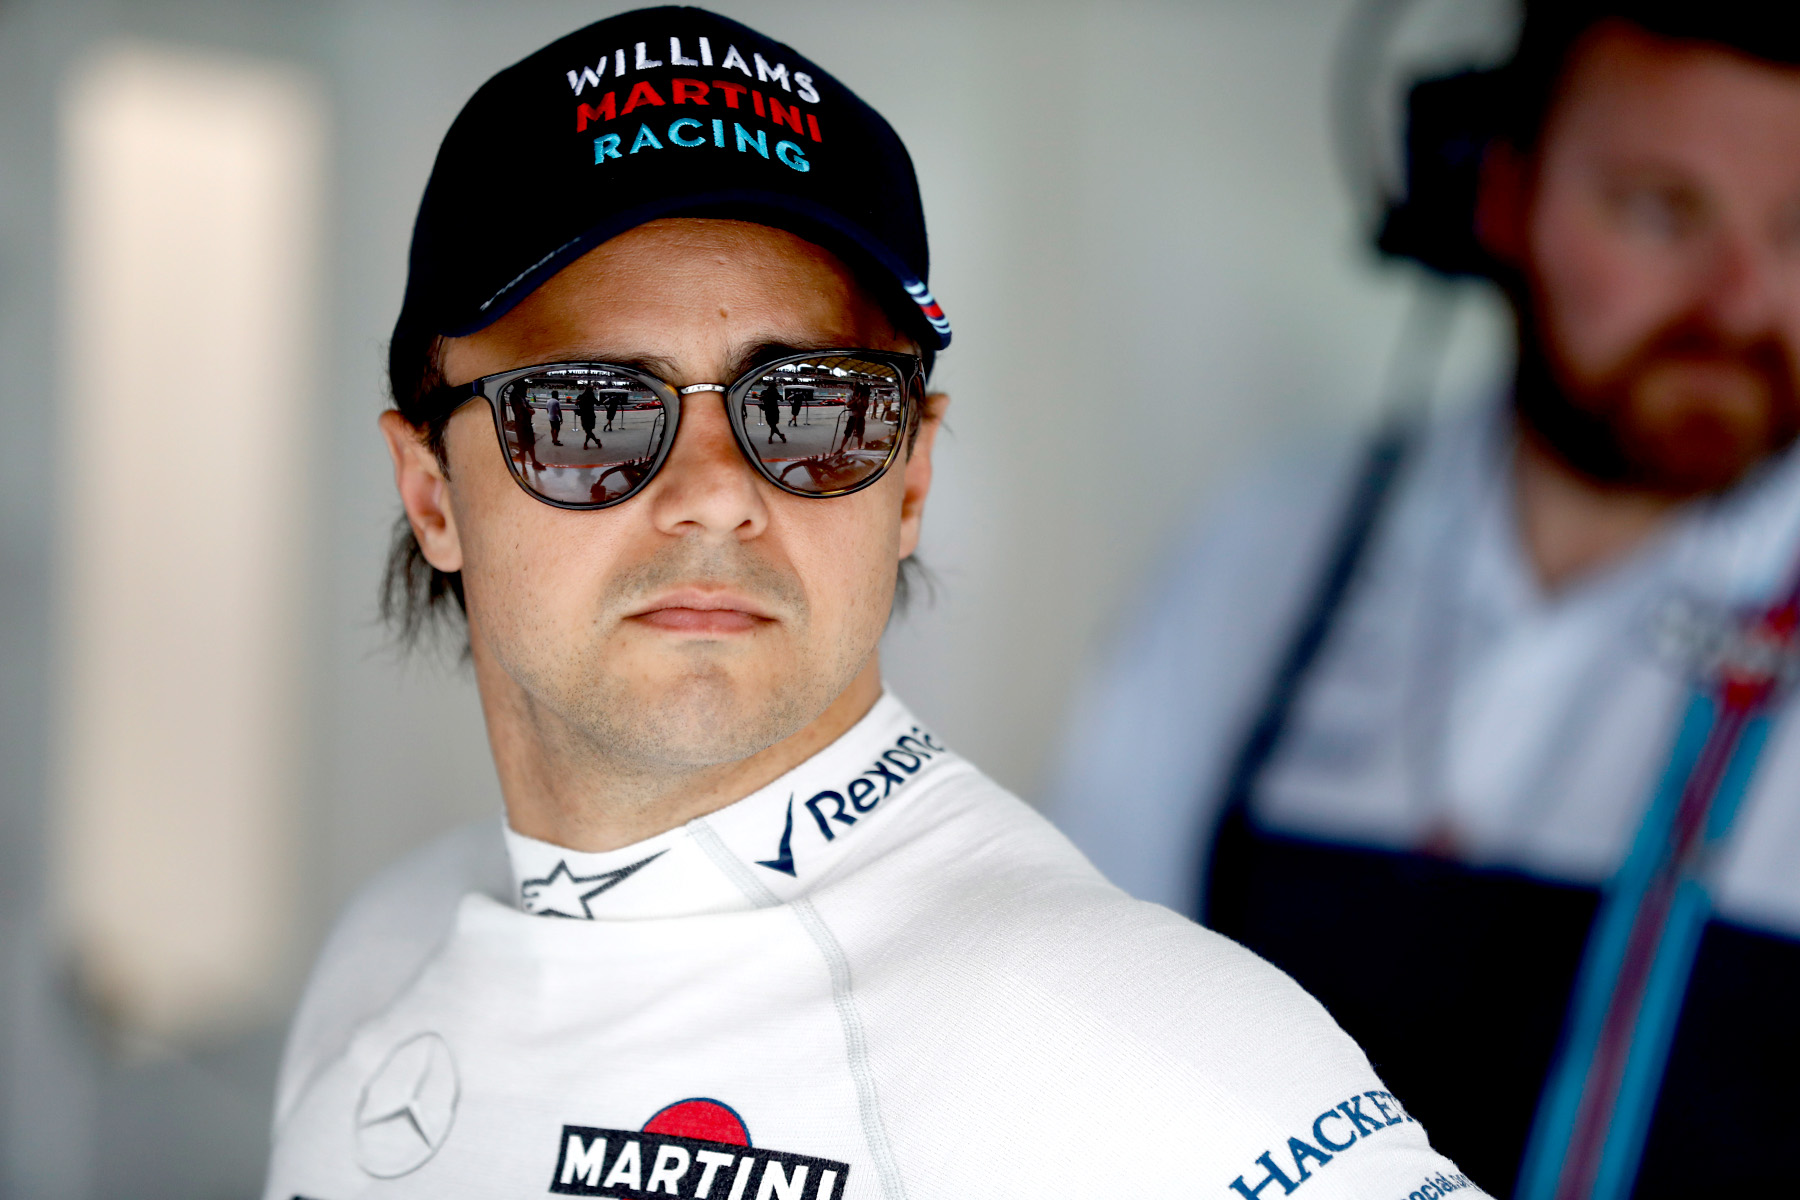 Felipe Massa in his garage at the 2017 Malaysian Grand Prix.